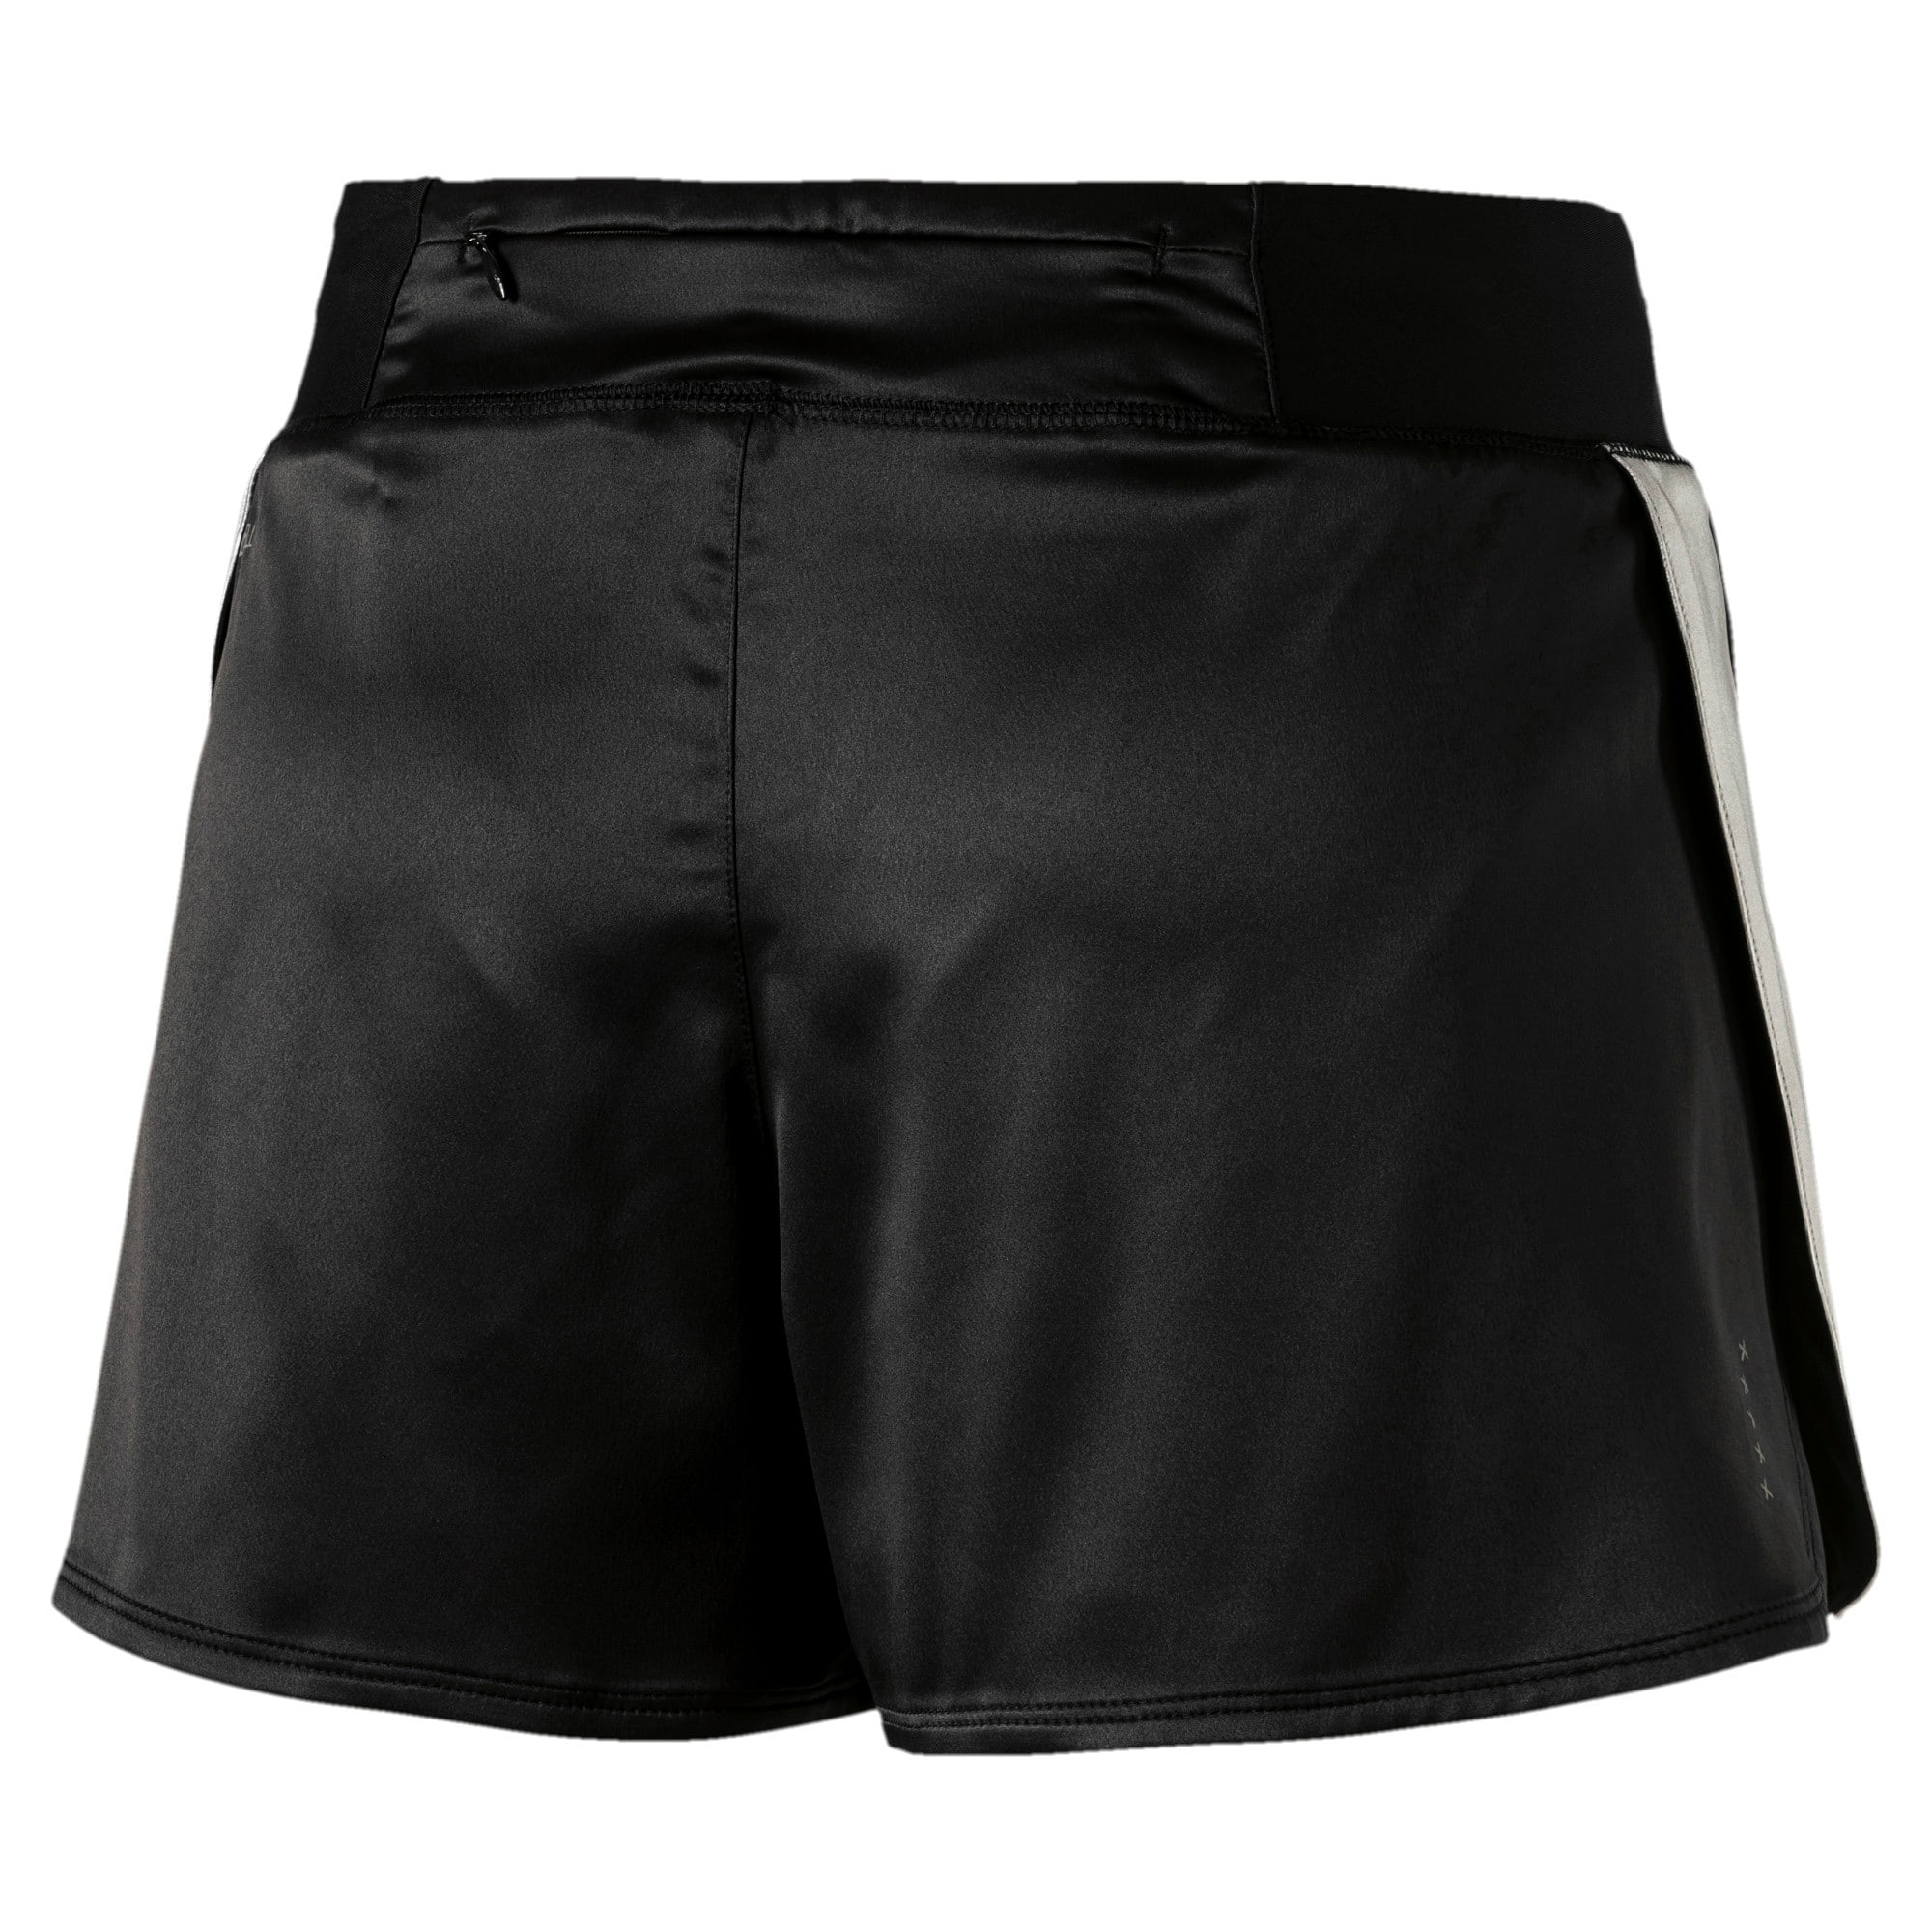 Thumbnail 7 of Blast Woven Women's Shorts, Puma Black, medium